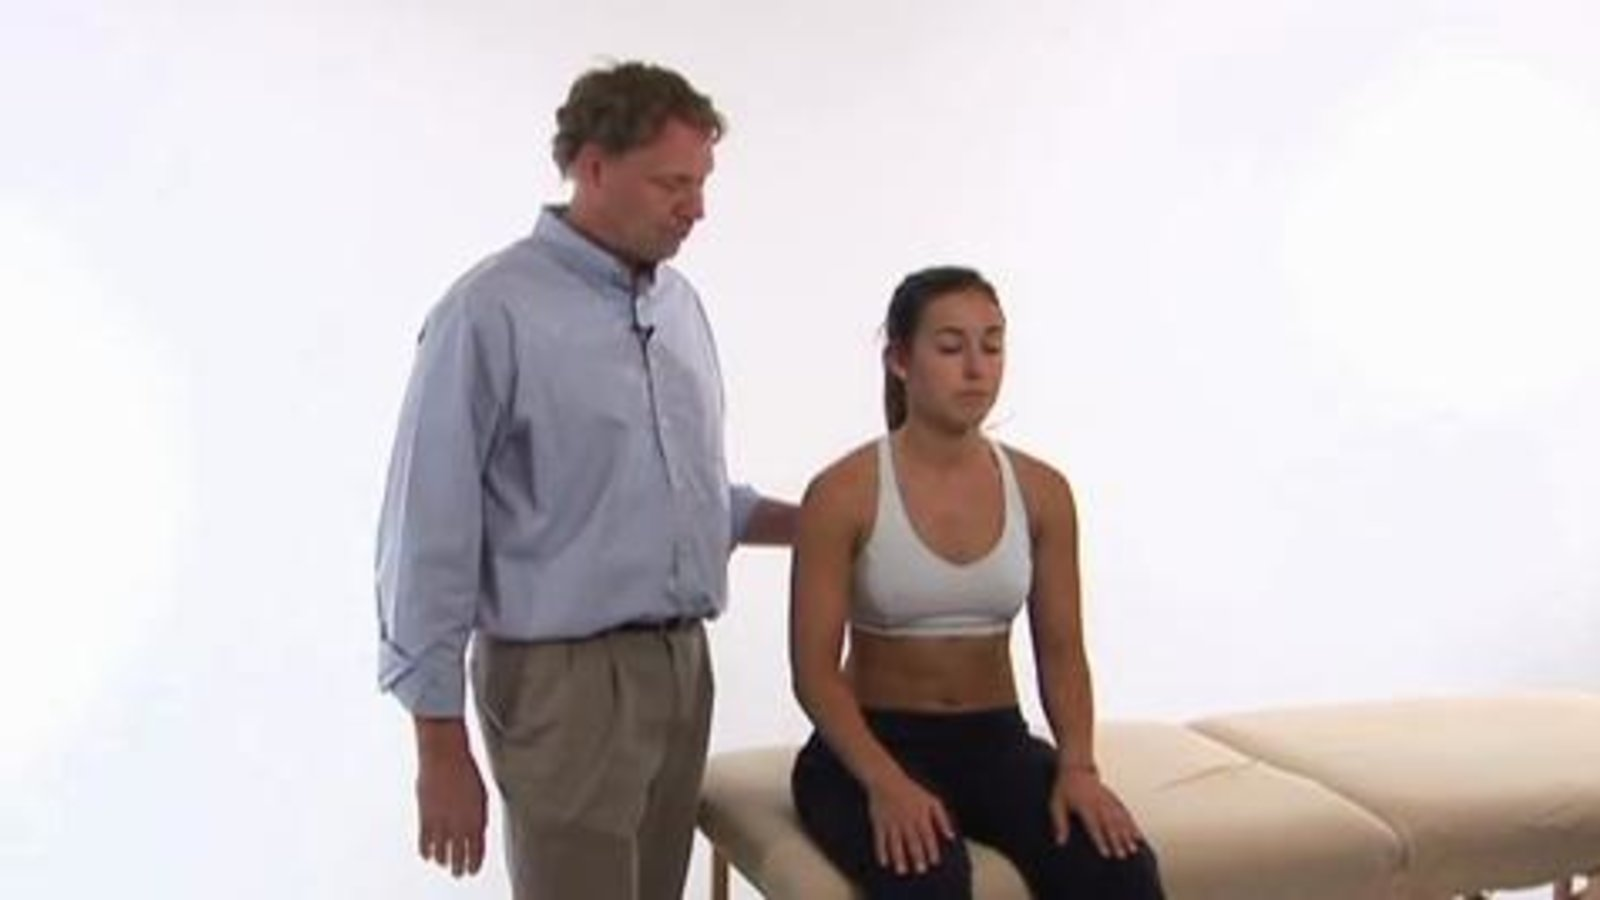 Orthopedic Assessment for Upper Body